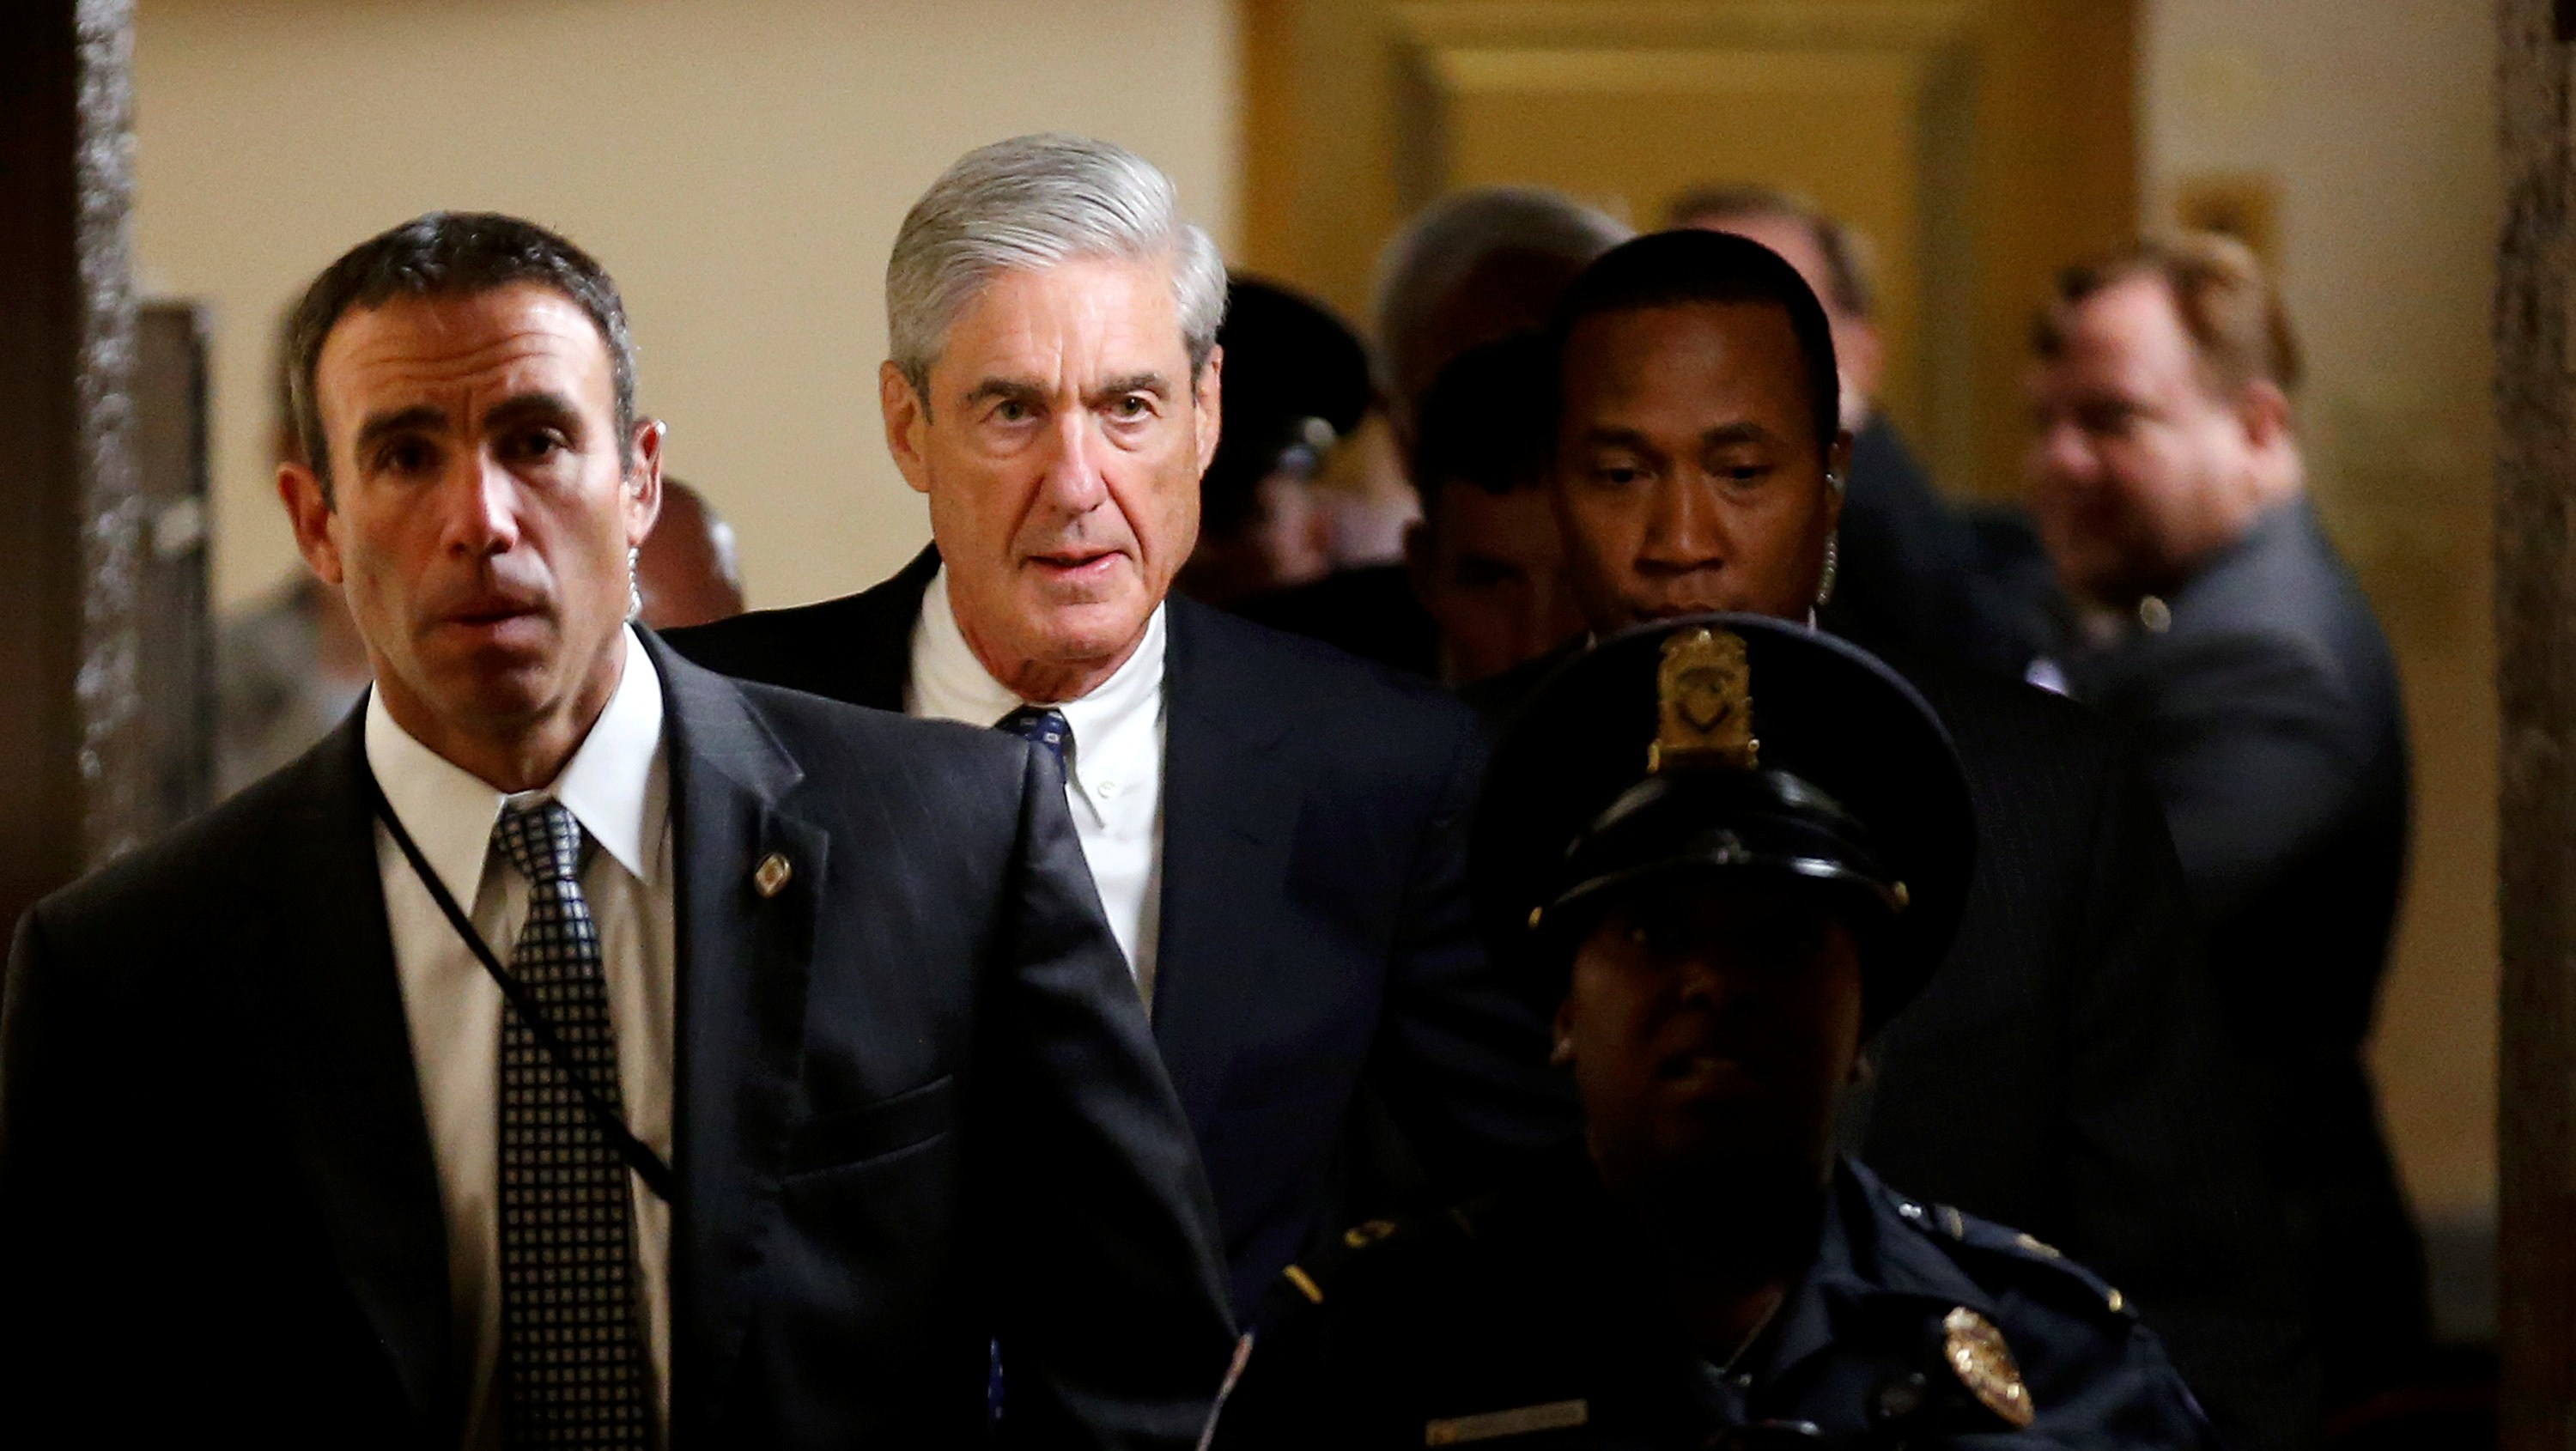 Special Counsel Robert Mueller departs after briefing members of the U.S. Senate on his investigation of potential collusion between Russia and the Trump campaign on Capitol Hill in Washington, U.S., June 21, 2017.   REUTERS/Joshua Roberts - RC18CD8B4890